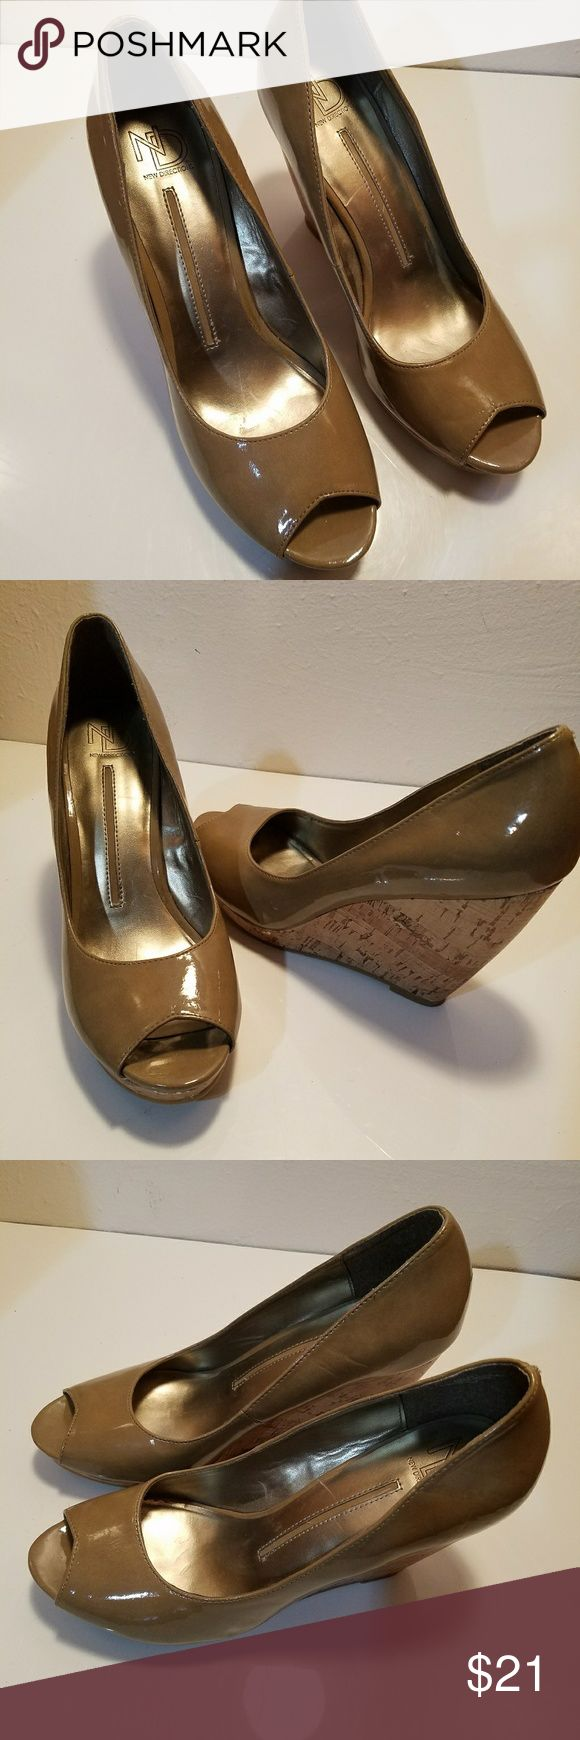 New Directions Patent Leather Peep Toe Wedges New Directions Patent Leather Peep Toe Wedges. Size 9M. 4 1/4 inch Heels. Excellent Condition. New Directions Shoes Wedges